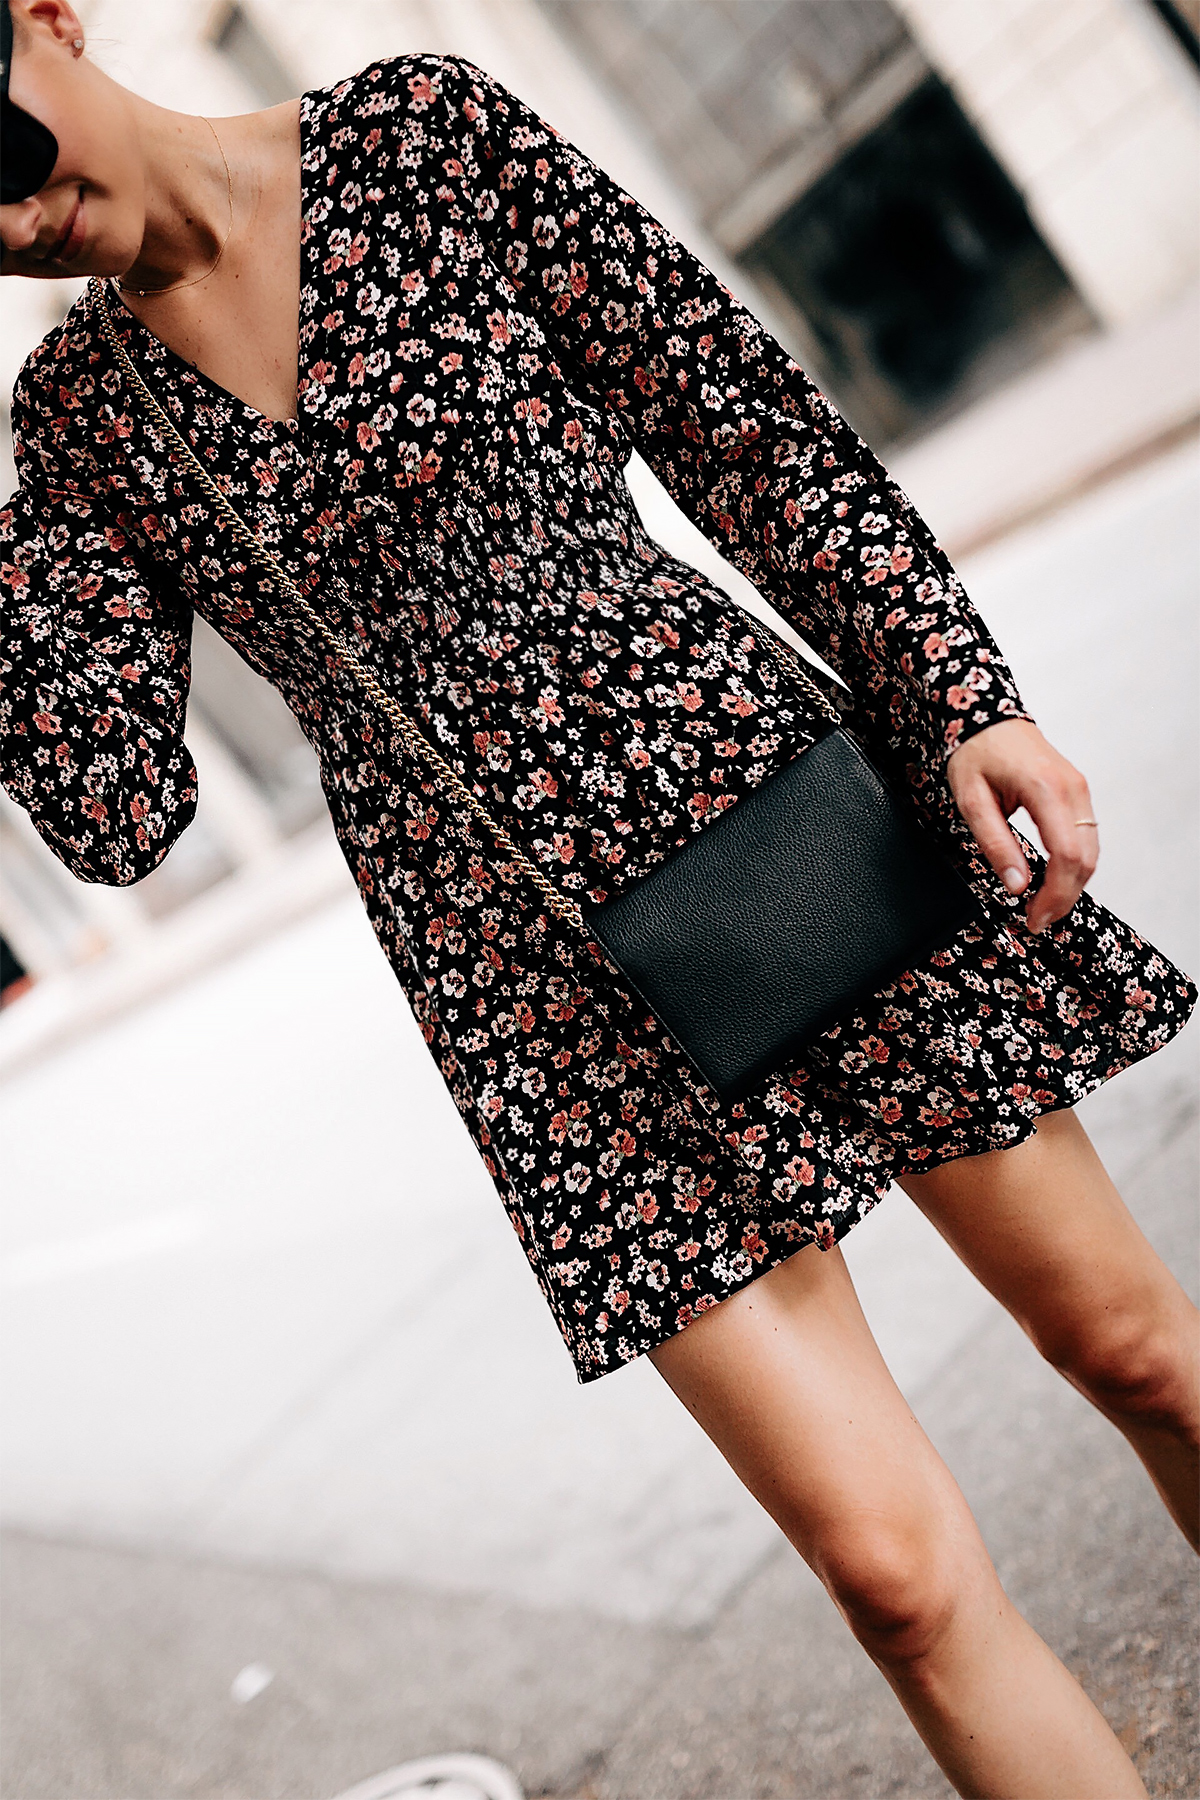 Woman Wearing Black Floral Long Sleeve Mini Dress Gold Chain Black Crossbody Handbag Fashion Jackson San Diego Fashion Blogger Street Style